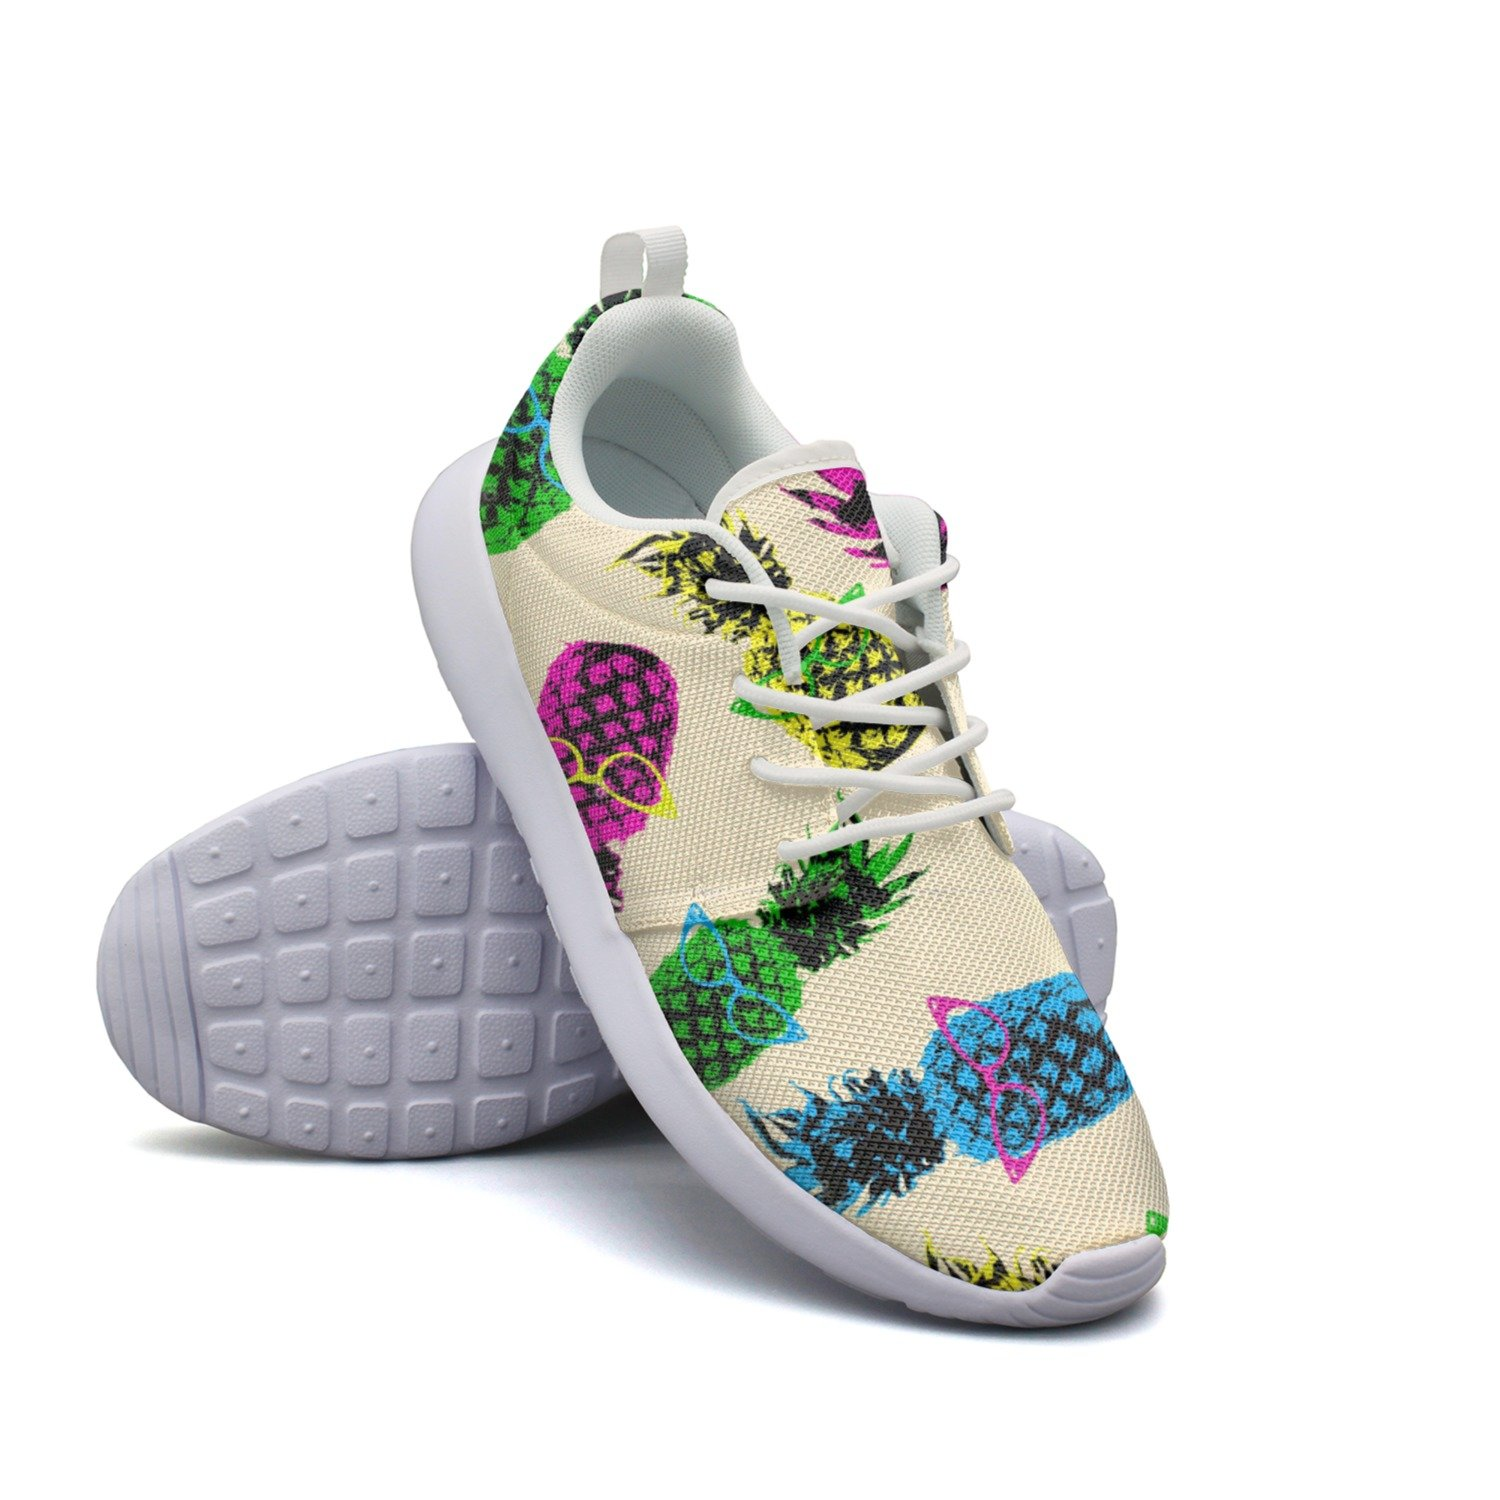 Hipster Style Pineapple Fruit Elements With Vintage Eye Glasses Women Printing Fashion Running Shoes Custom Comfortable